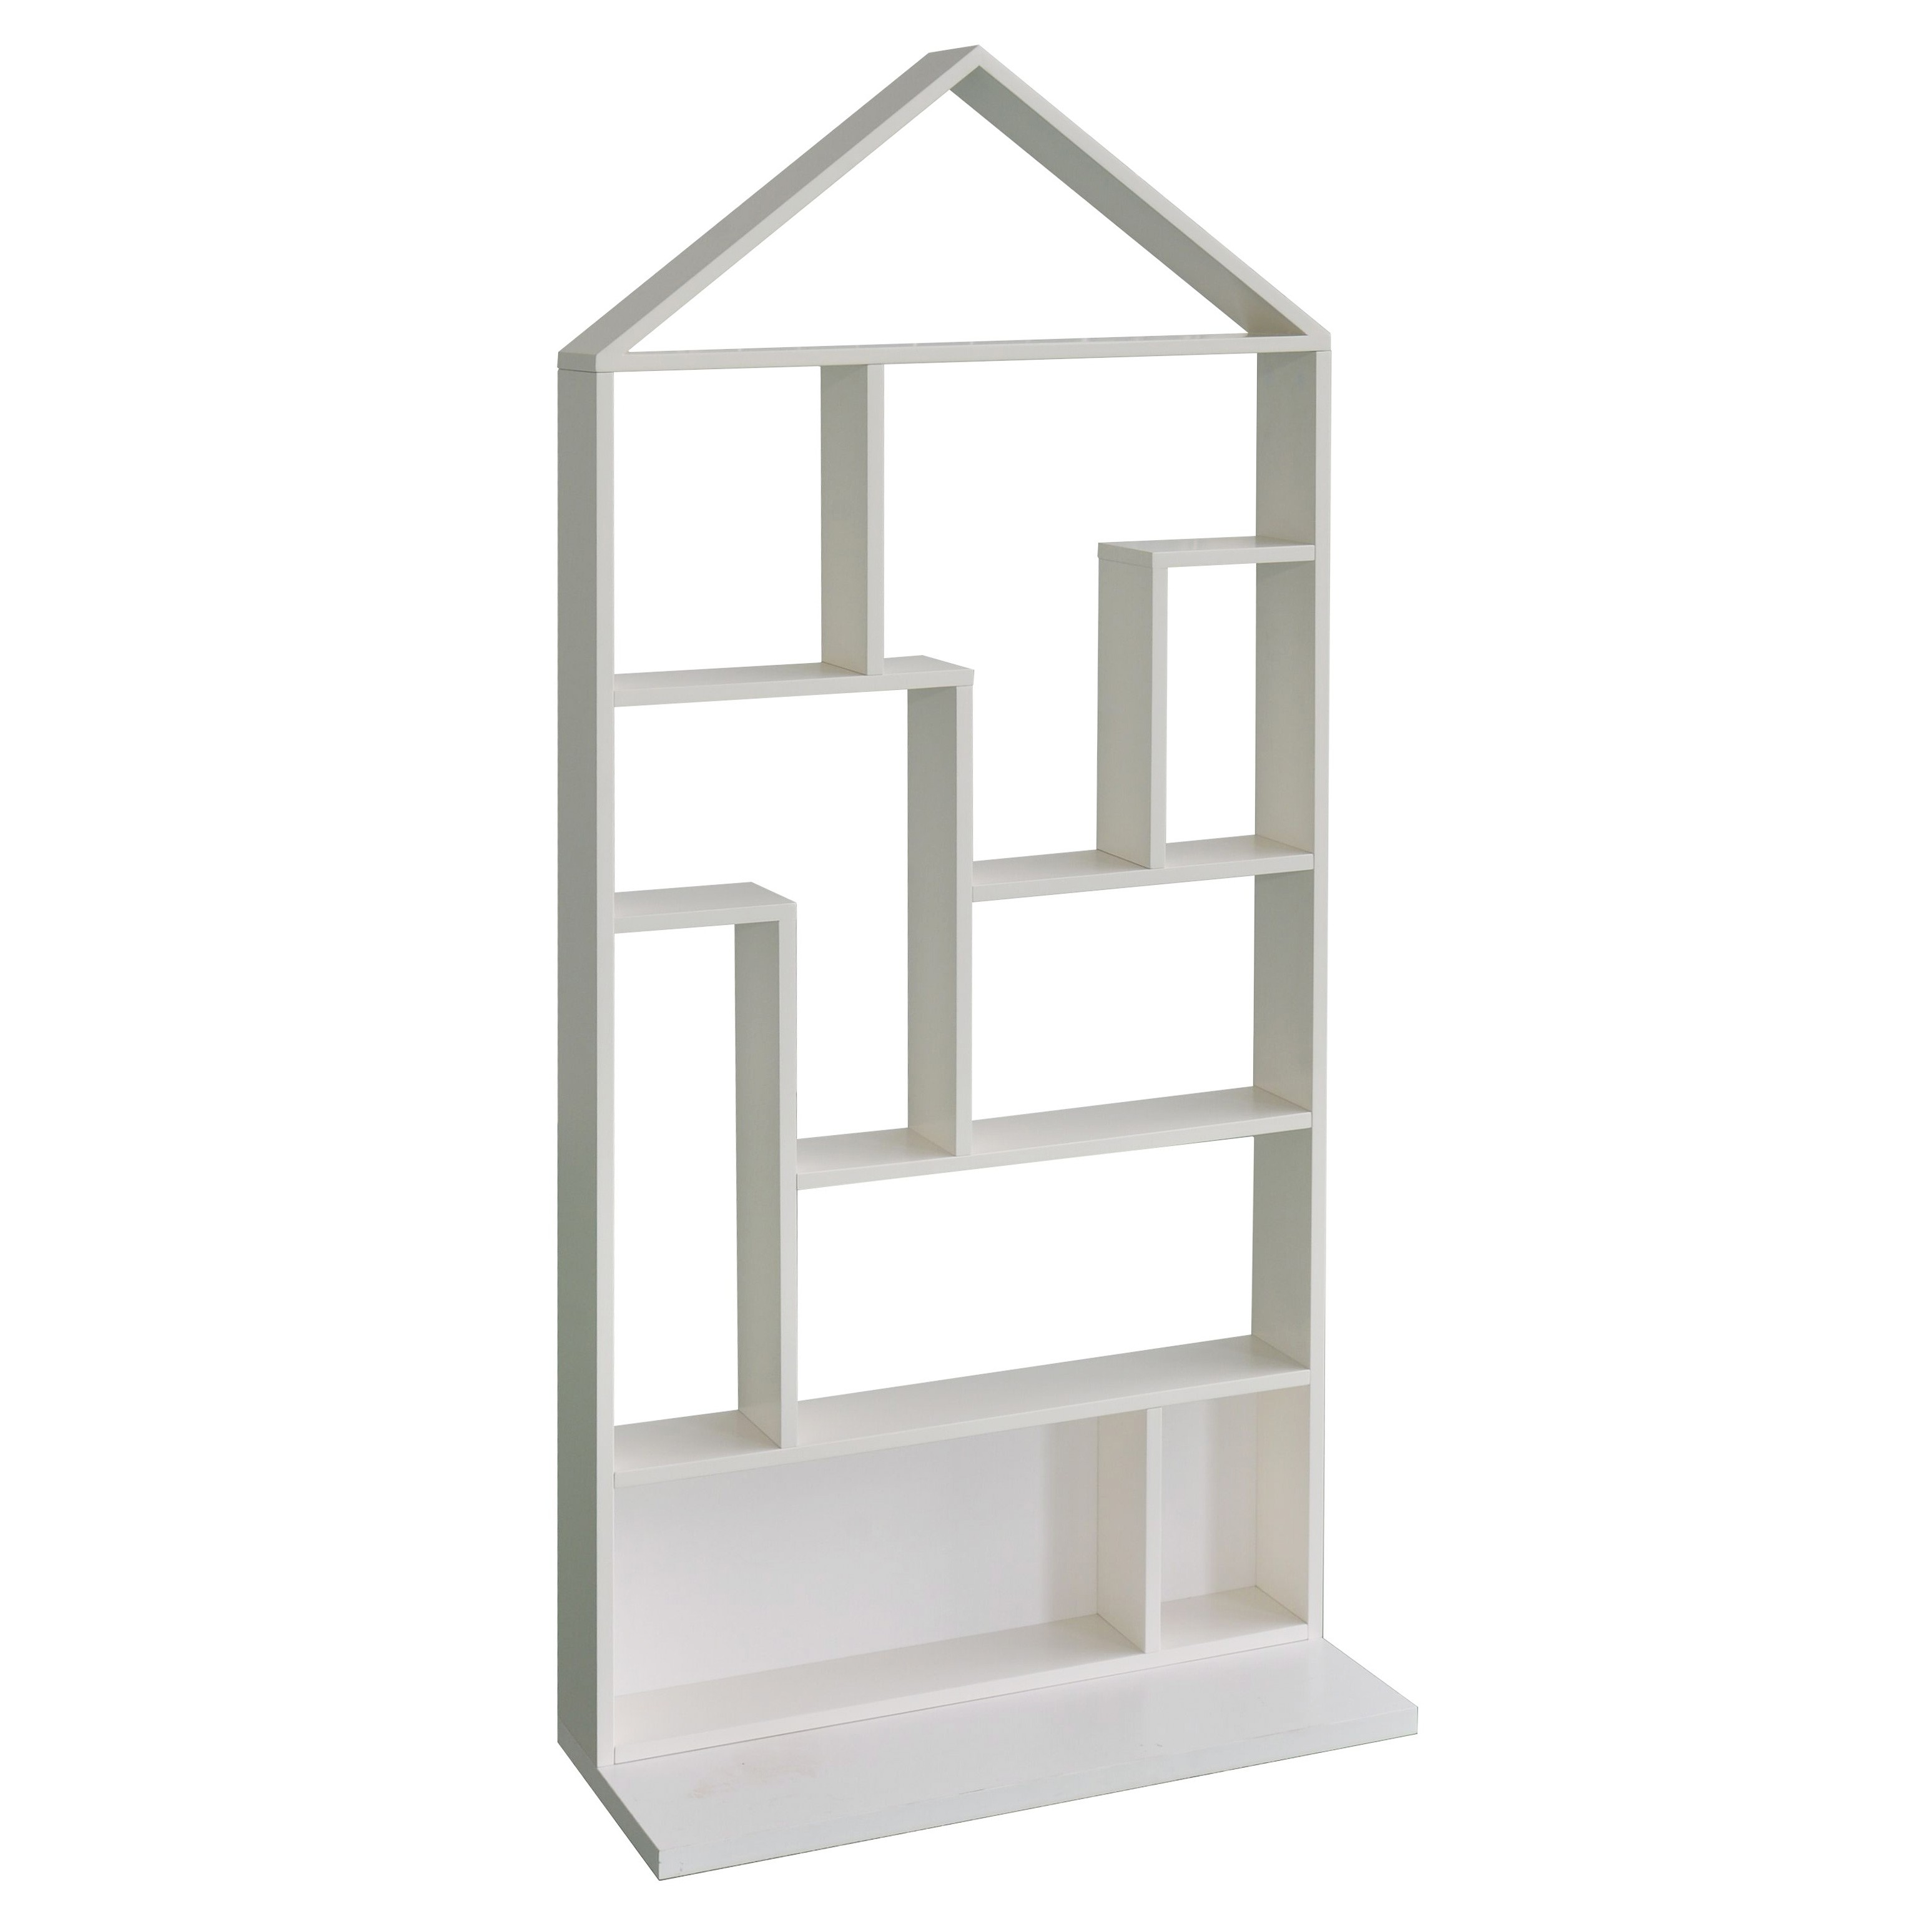 Honiton Arbor Display Shelf